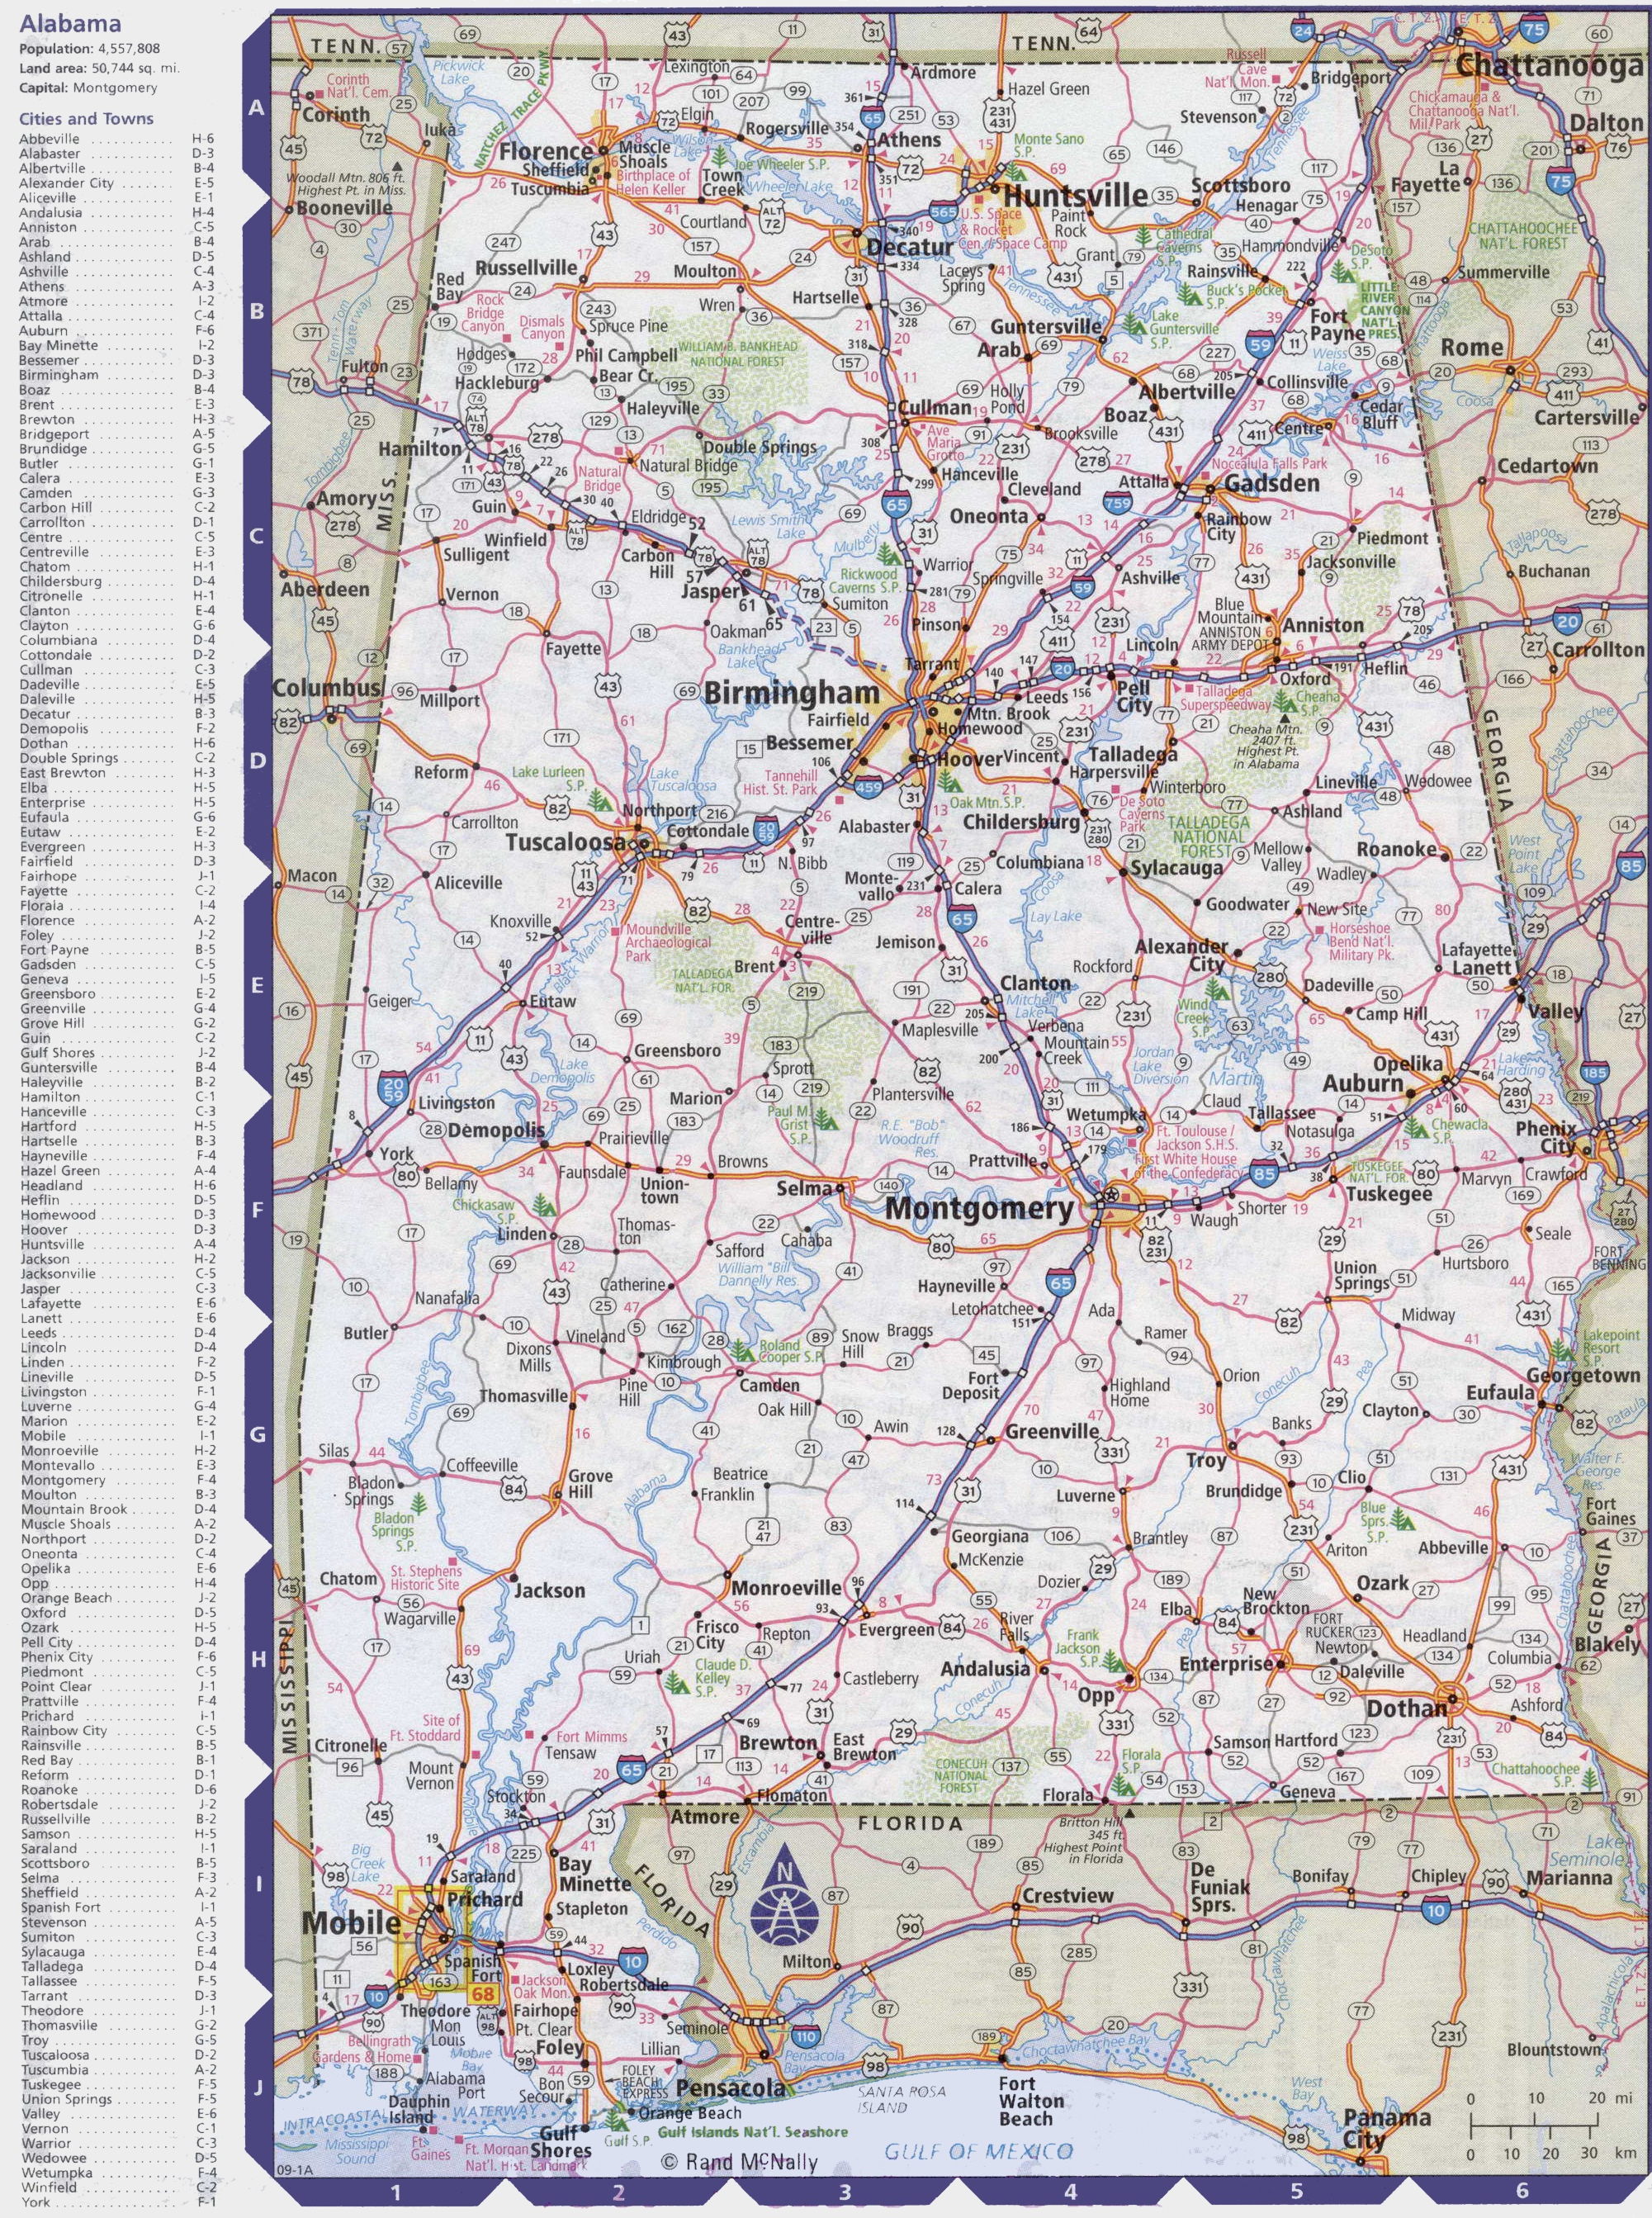 Alabama State Maps USA Maps Of Alabama AL - Alabama map usa